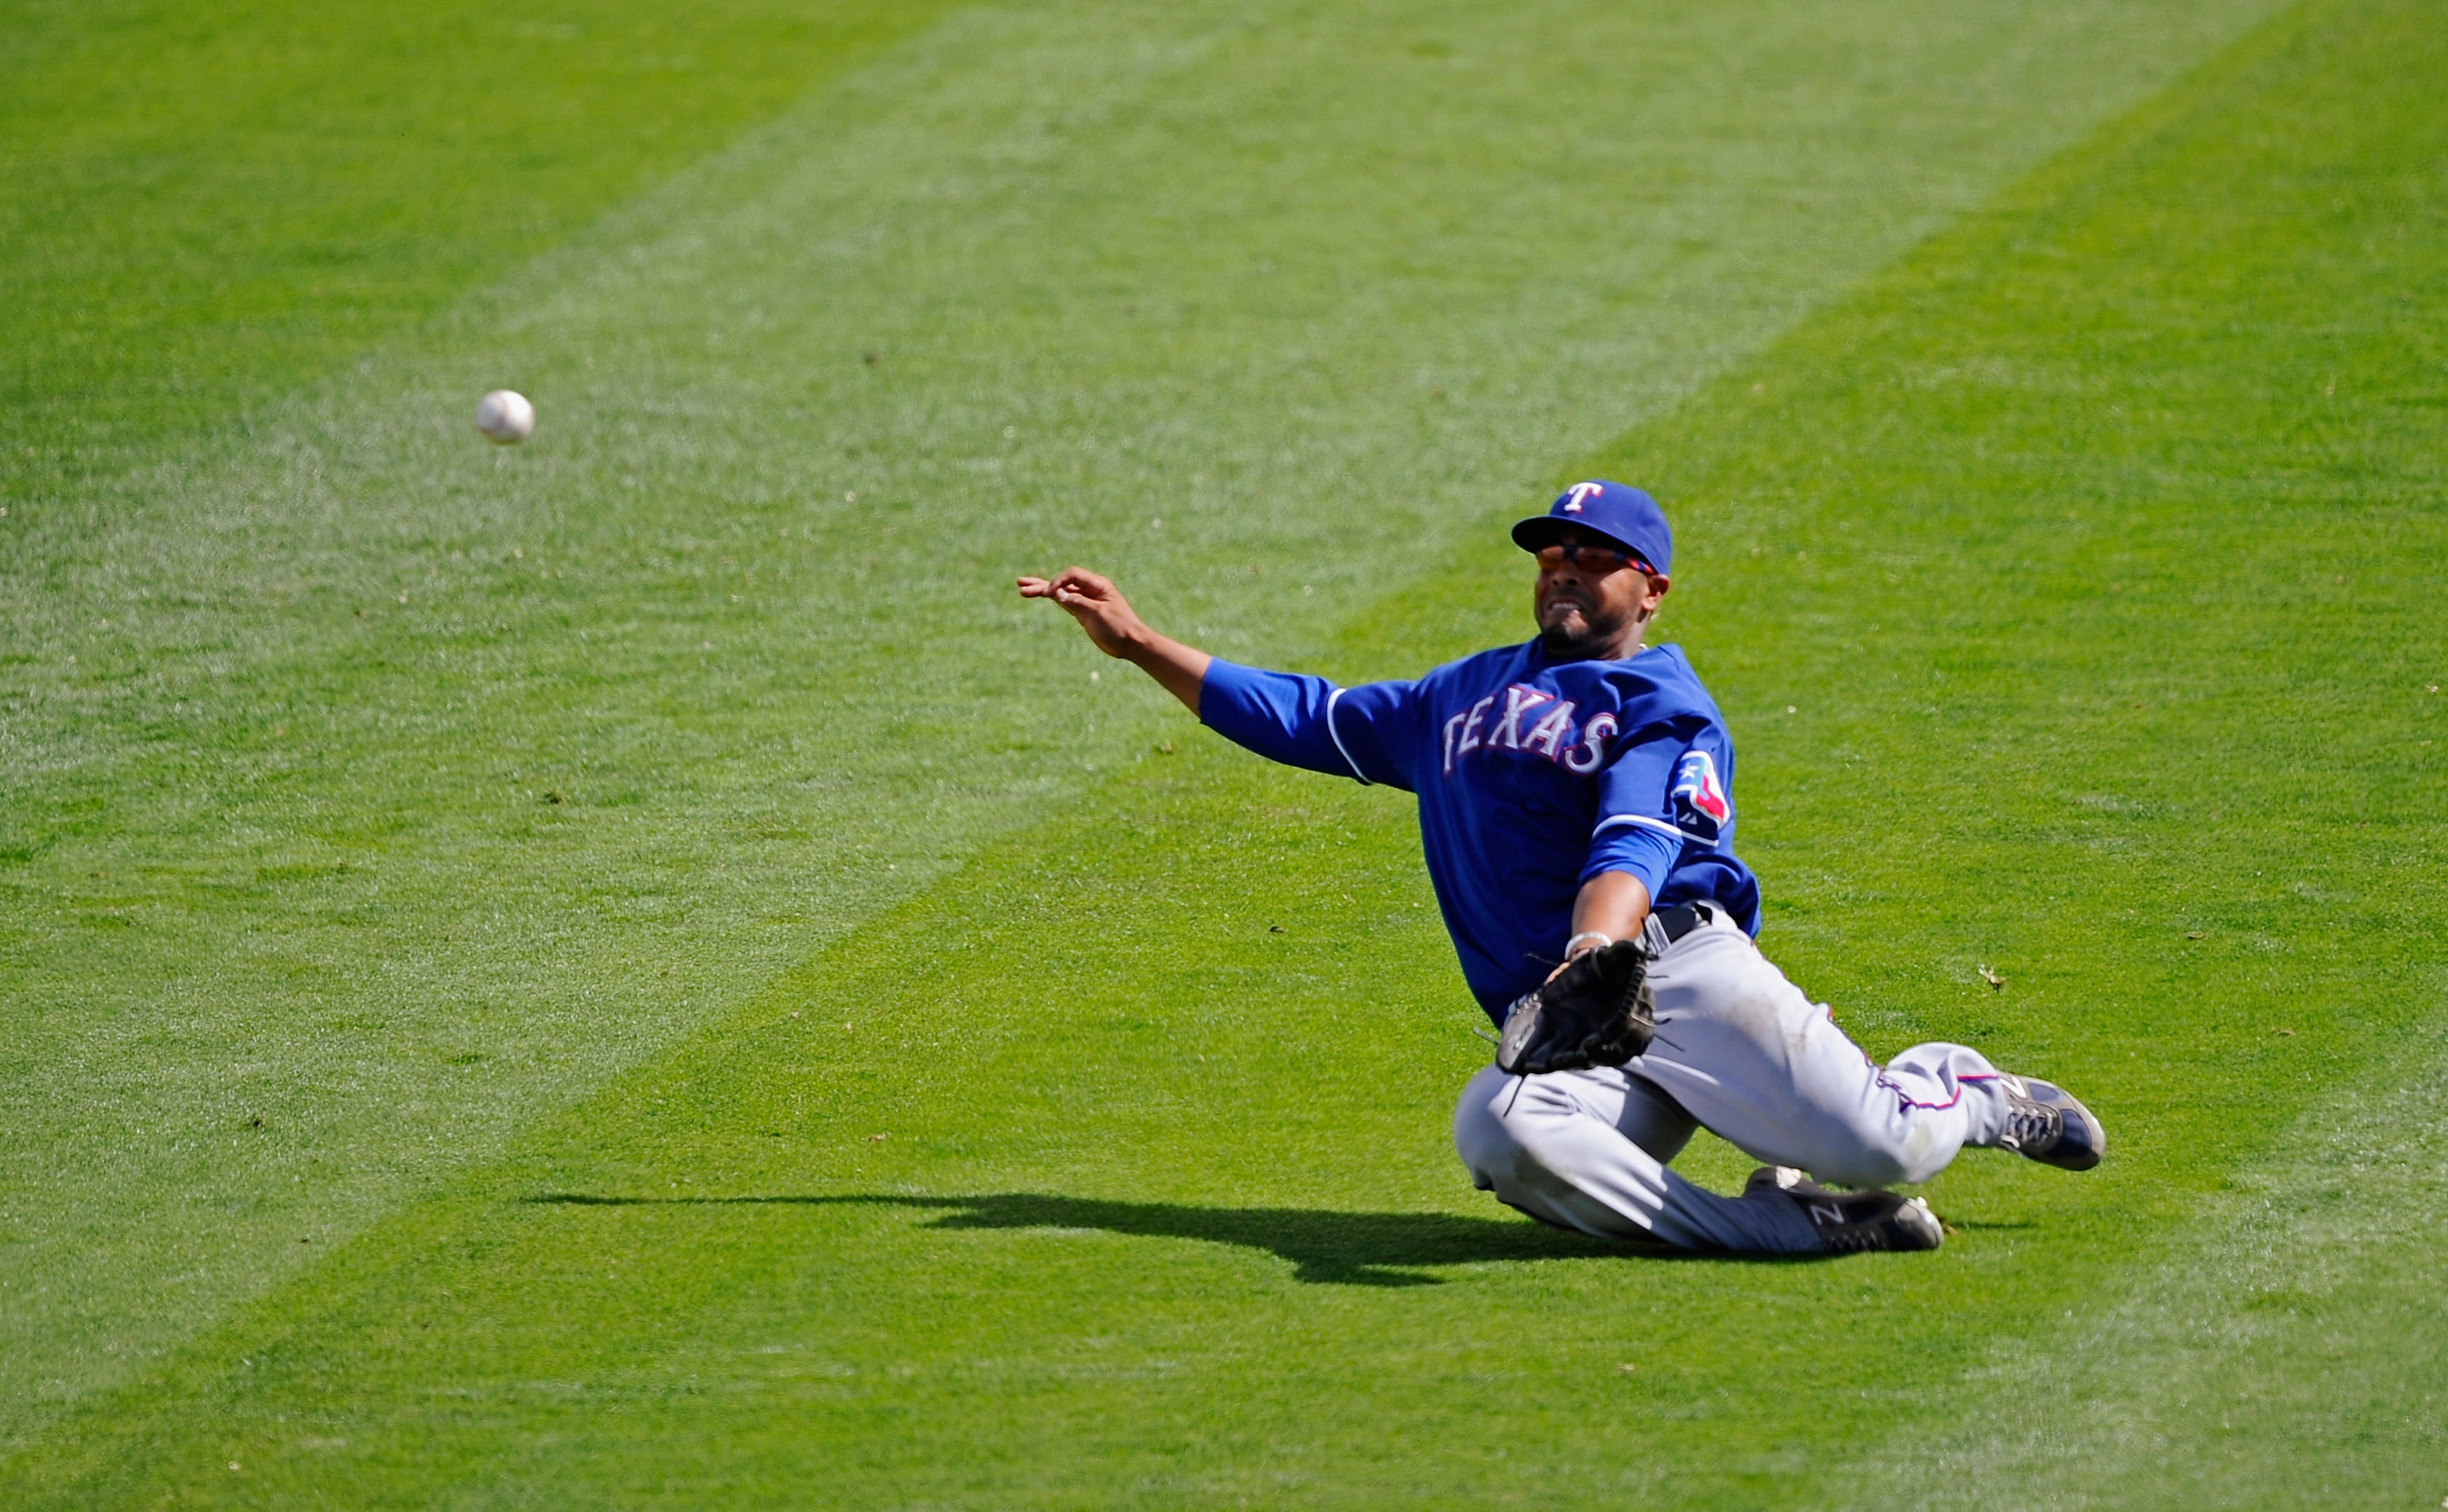 GLENDALE, AZ - MARCH 15:  Nelson Cruz #17 of the Texas Rangers attempts to unsucsessfully make a sliding catch on a  basehit by Andre Ethier #16 of the Los Angeles Dodgers during the thrid inning of the spring training baseball game at Camelback Ranch on